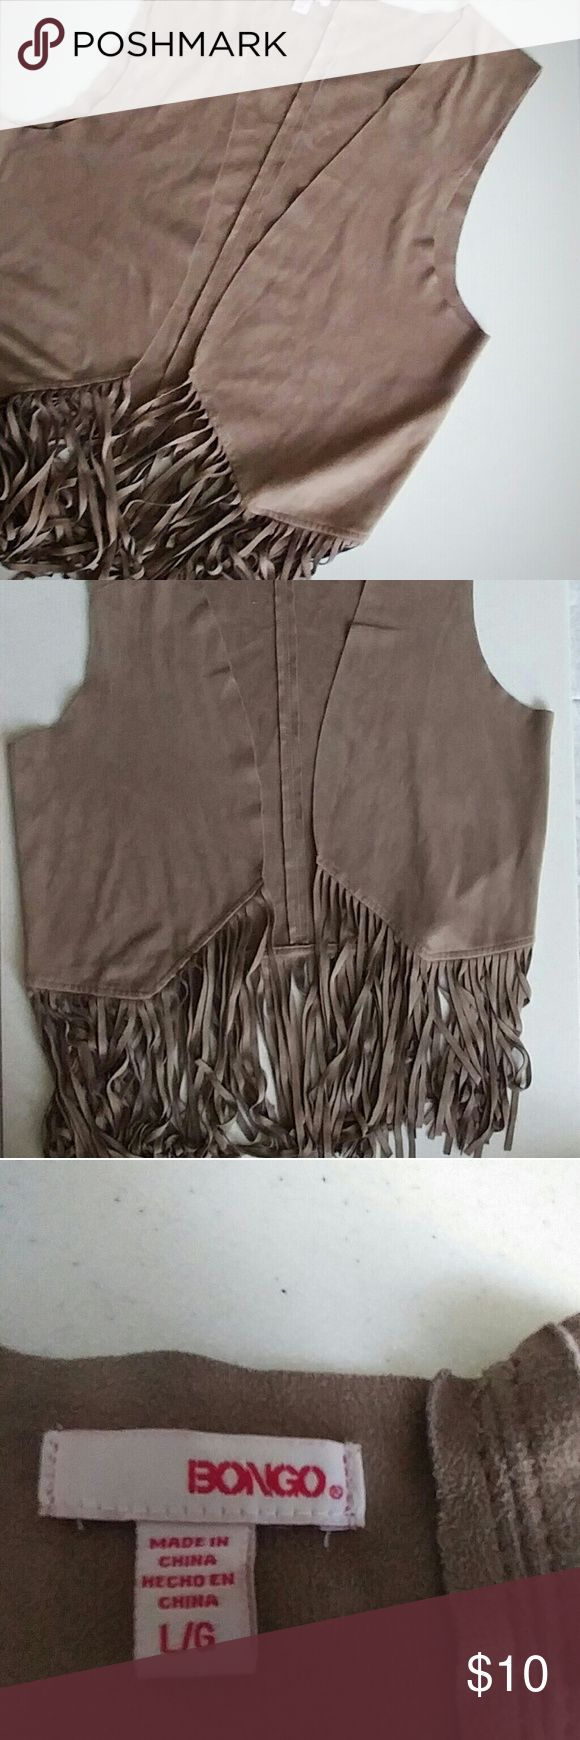 BONGO | Faux Suede Western Vest Beautiful vest in great condition! Great accesory for any outfit BONGO Jackets & Coats Vests